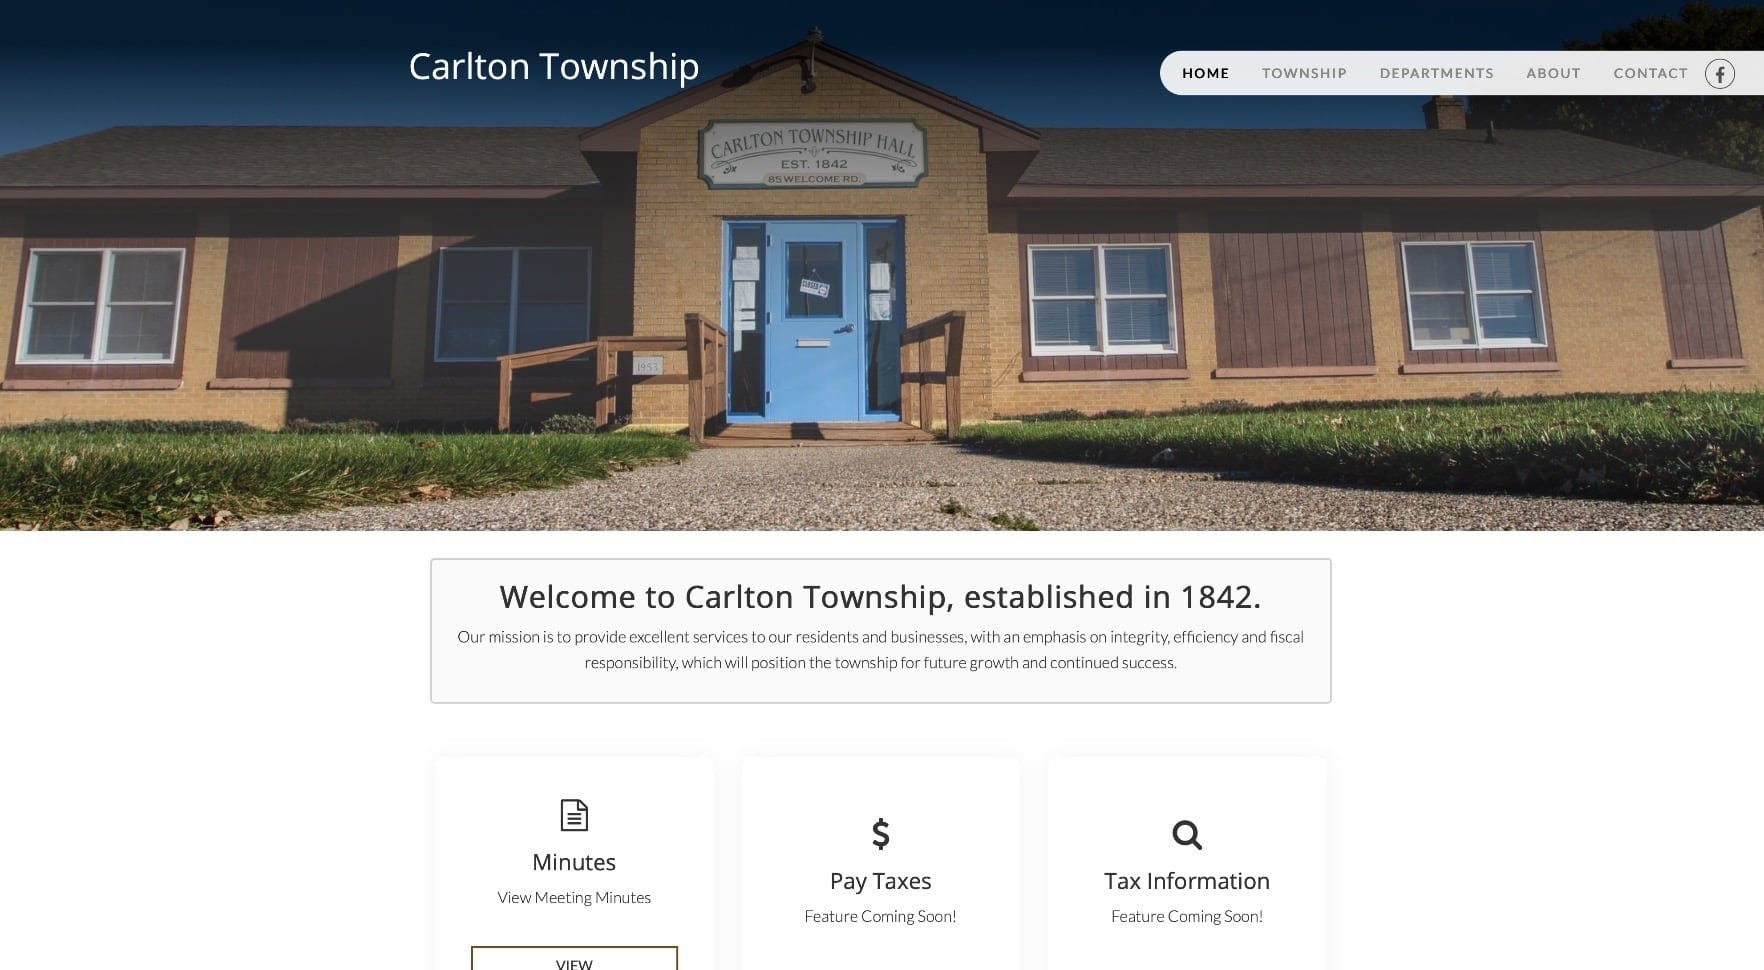 Carlton Township in Hastings MI